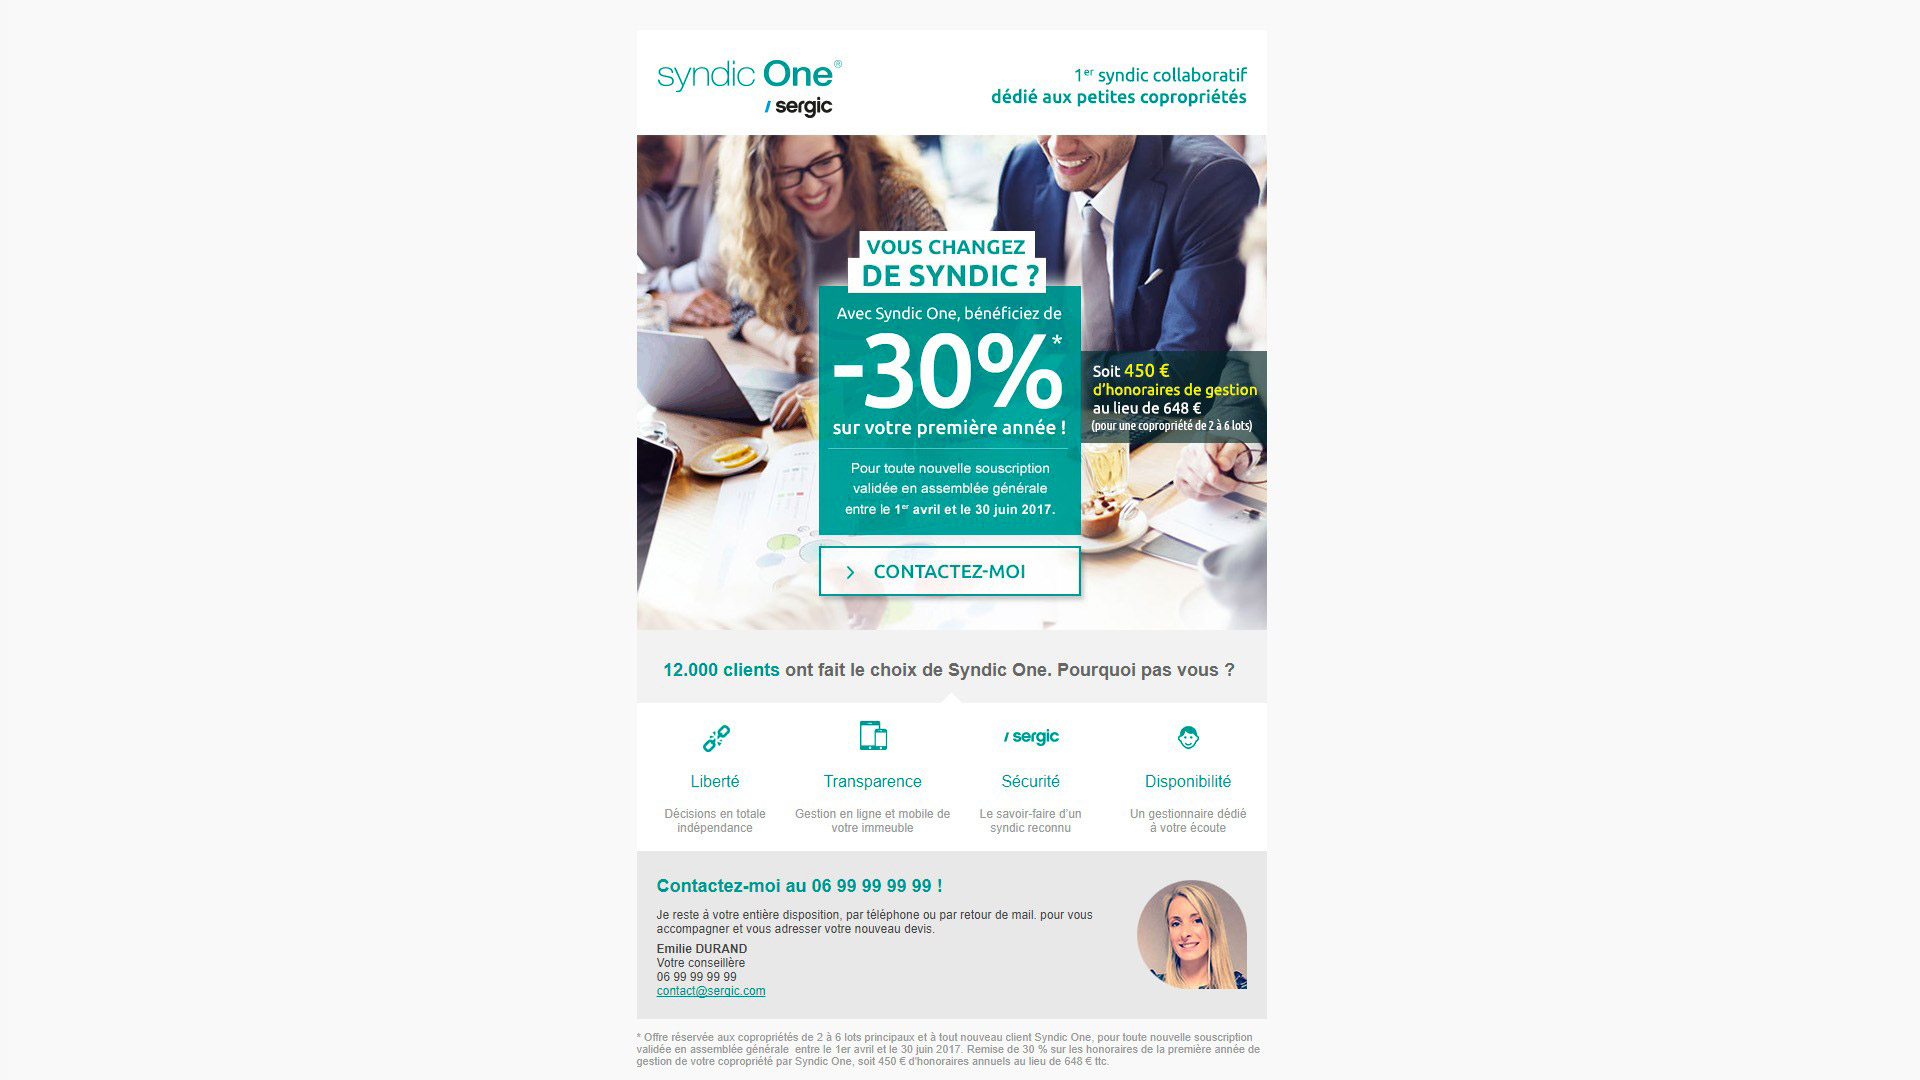 E-mailing Syndic One